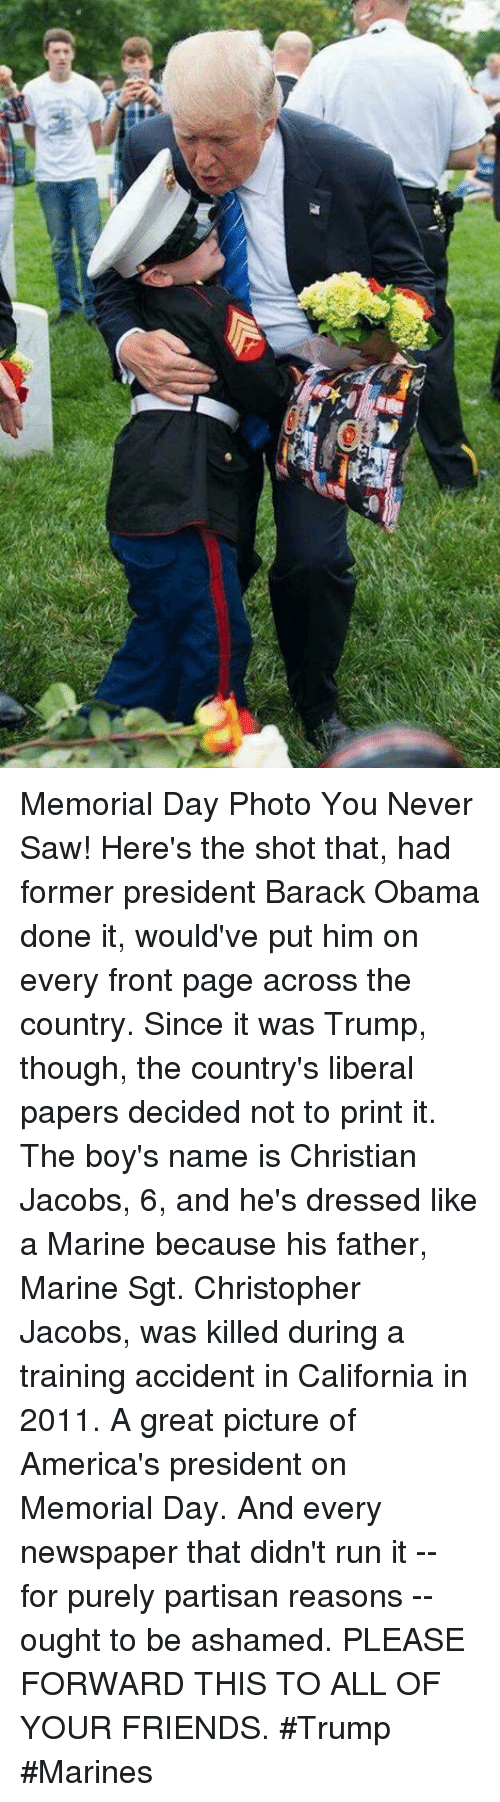 partisan: Memorial Day Photo You Never Saw!   Here's the shot that, had former president Barack Obama  done it, would've put him on every front page across the  country. Since it was Trump, though, the country's liberal  papers decided not to print it.   The boy's name is Christian Jacobs, 6, and he's dressed like  a Marine because his father, Marine Sgt. Christopher Jacobs, was killed during a training accident in California in 2011.  A great picture of America's president on Memorial Day. And  every newspaper that didn't run it -- for purely partisan  reasons -- ought to be ashamed.  PLEASE FORWARD THIS TO ALL OF YOUR FRIENDS.  #Trump #Marines